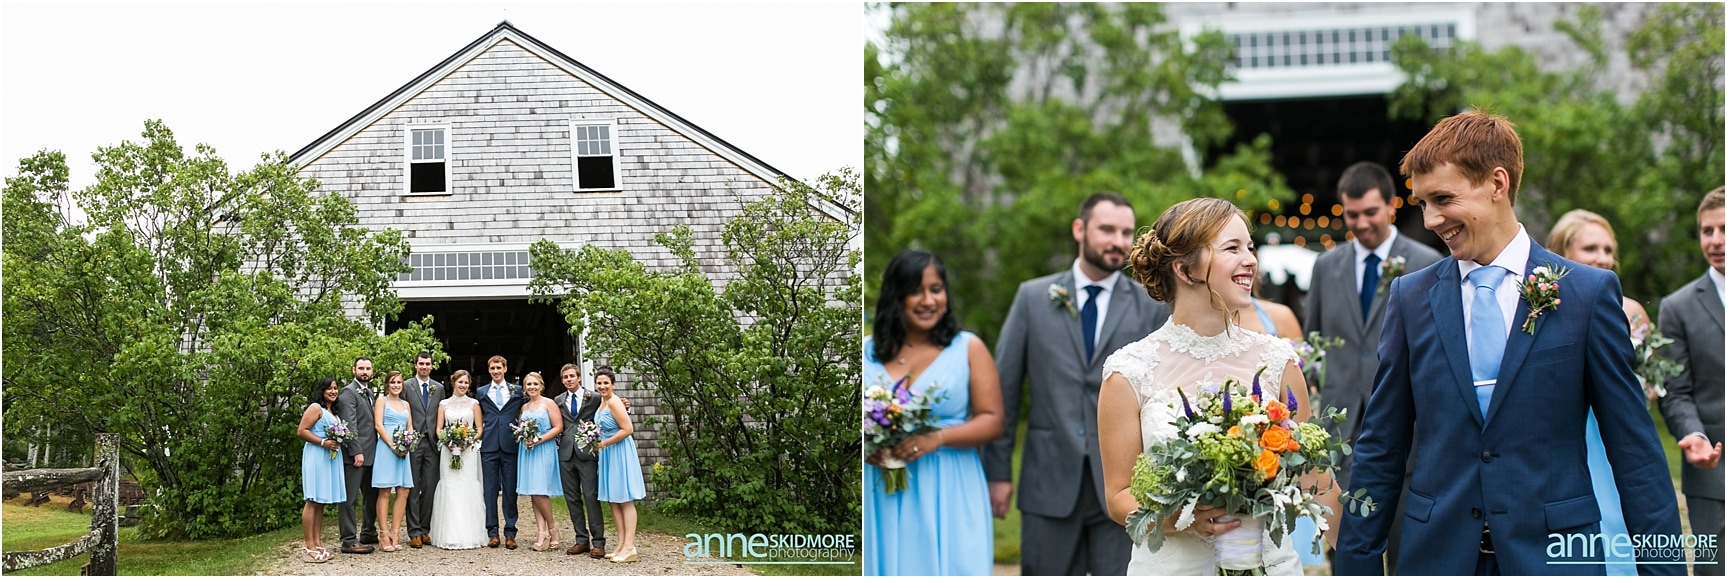 moody_mountain_farm_wedding__047